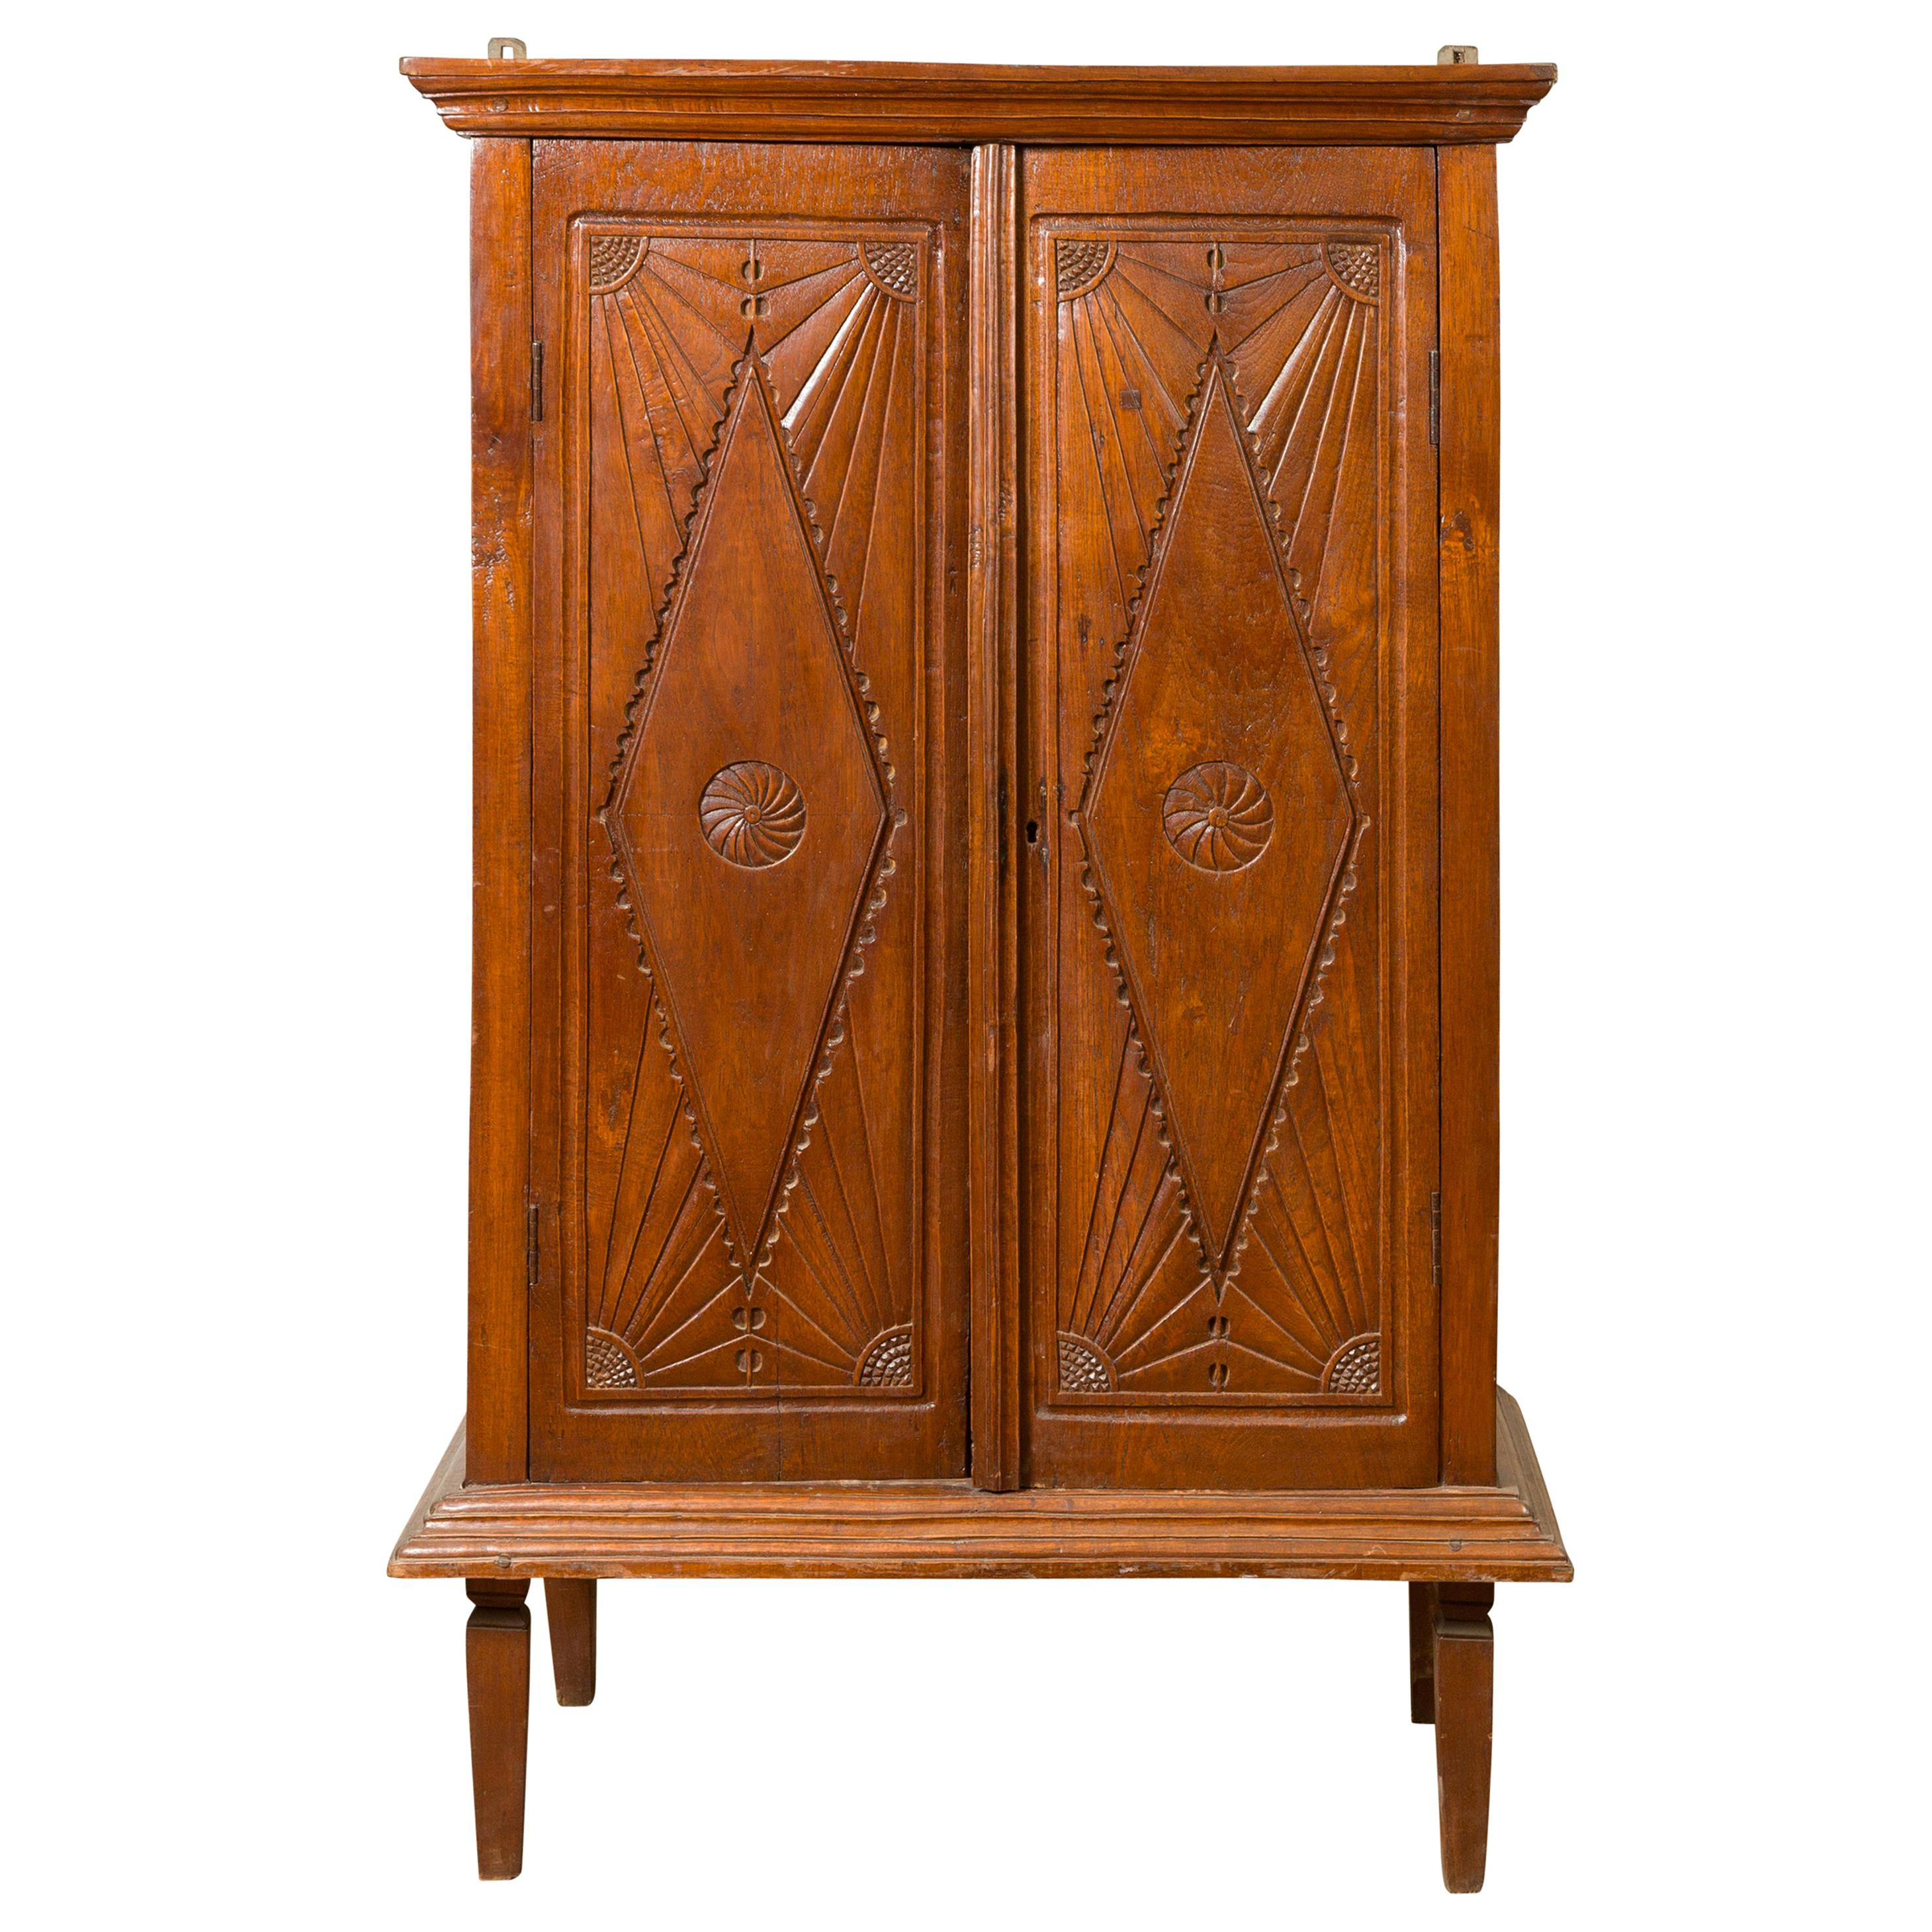 Antique Indonesian Carved Wooden Cabinet with Diamonds and Radiating Motifs